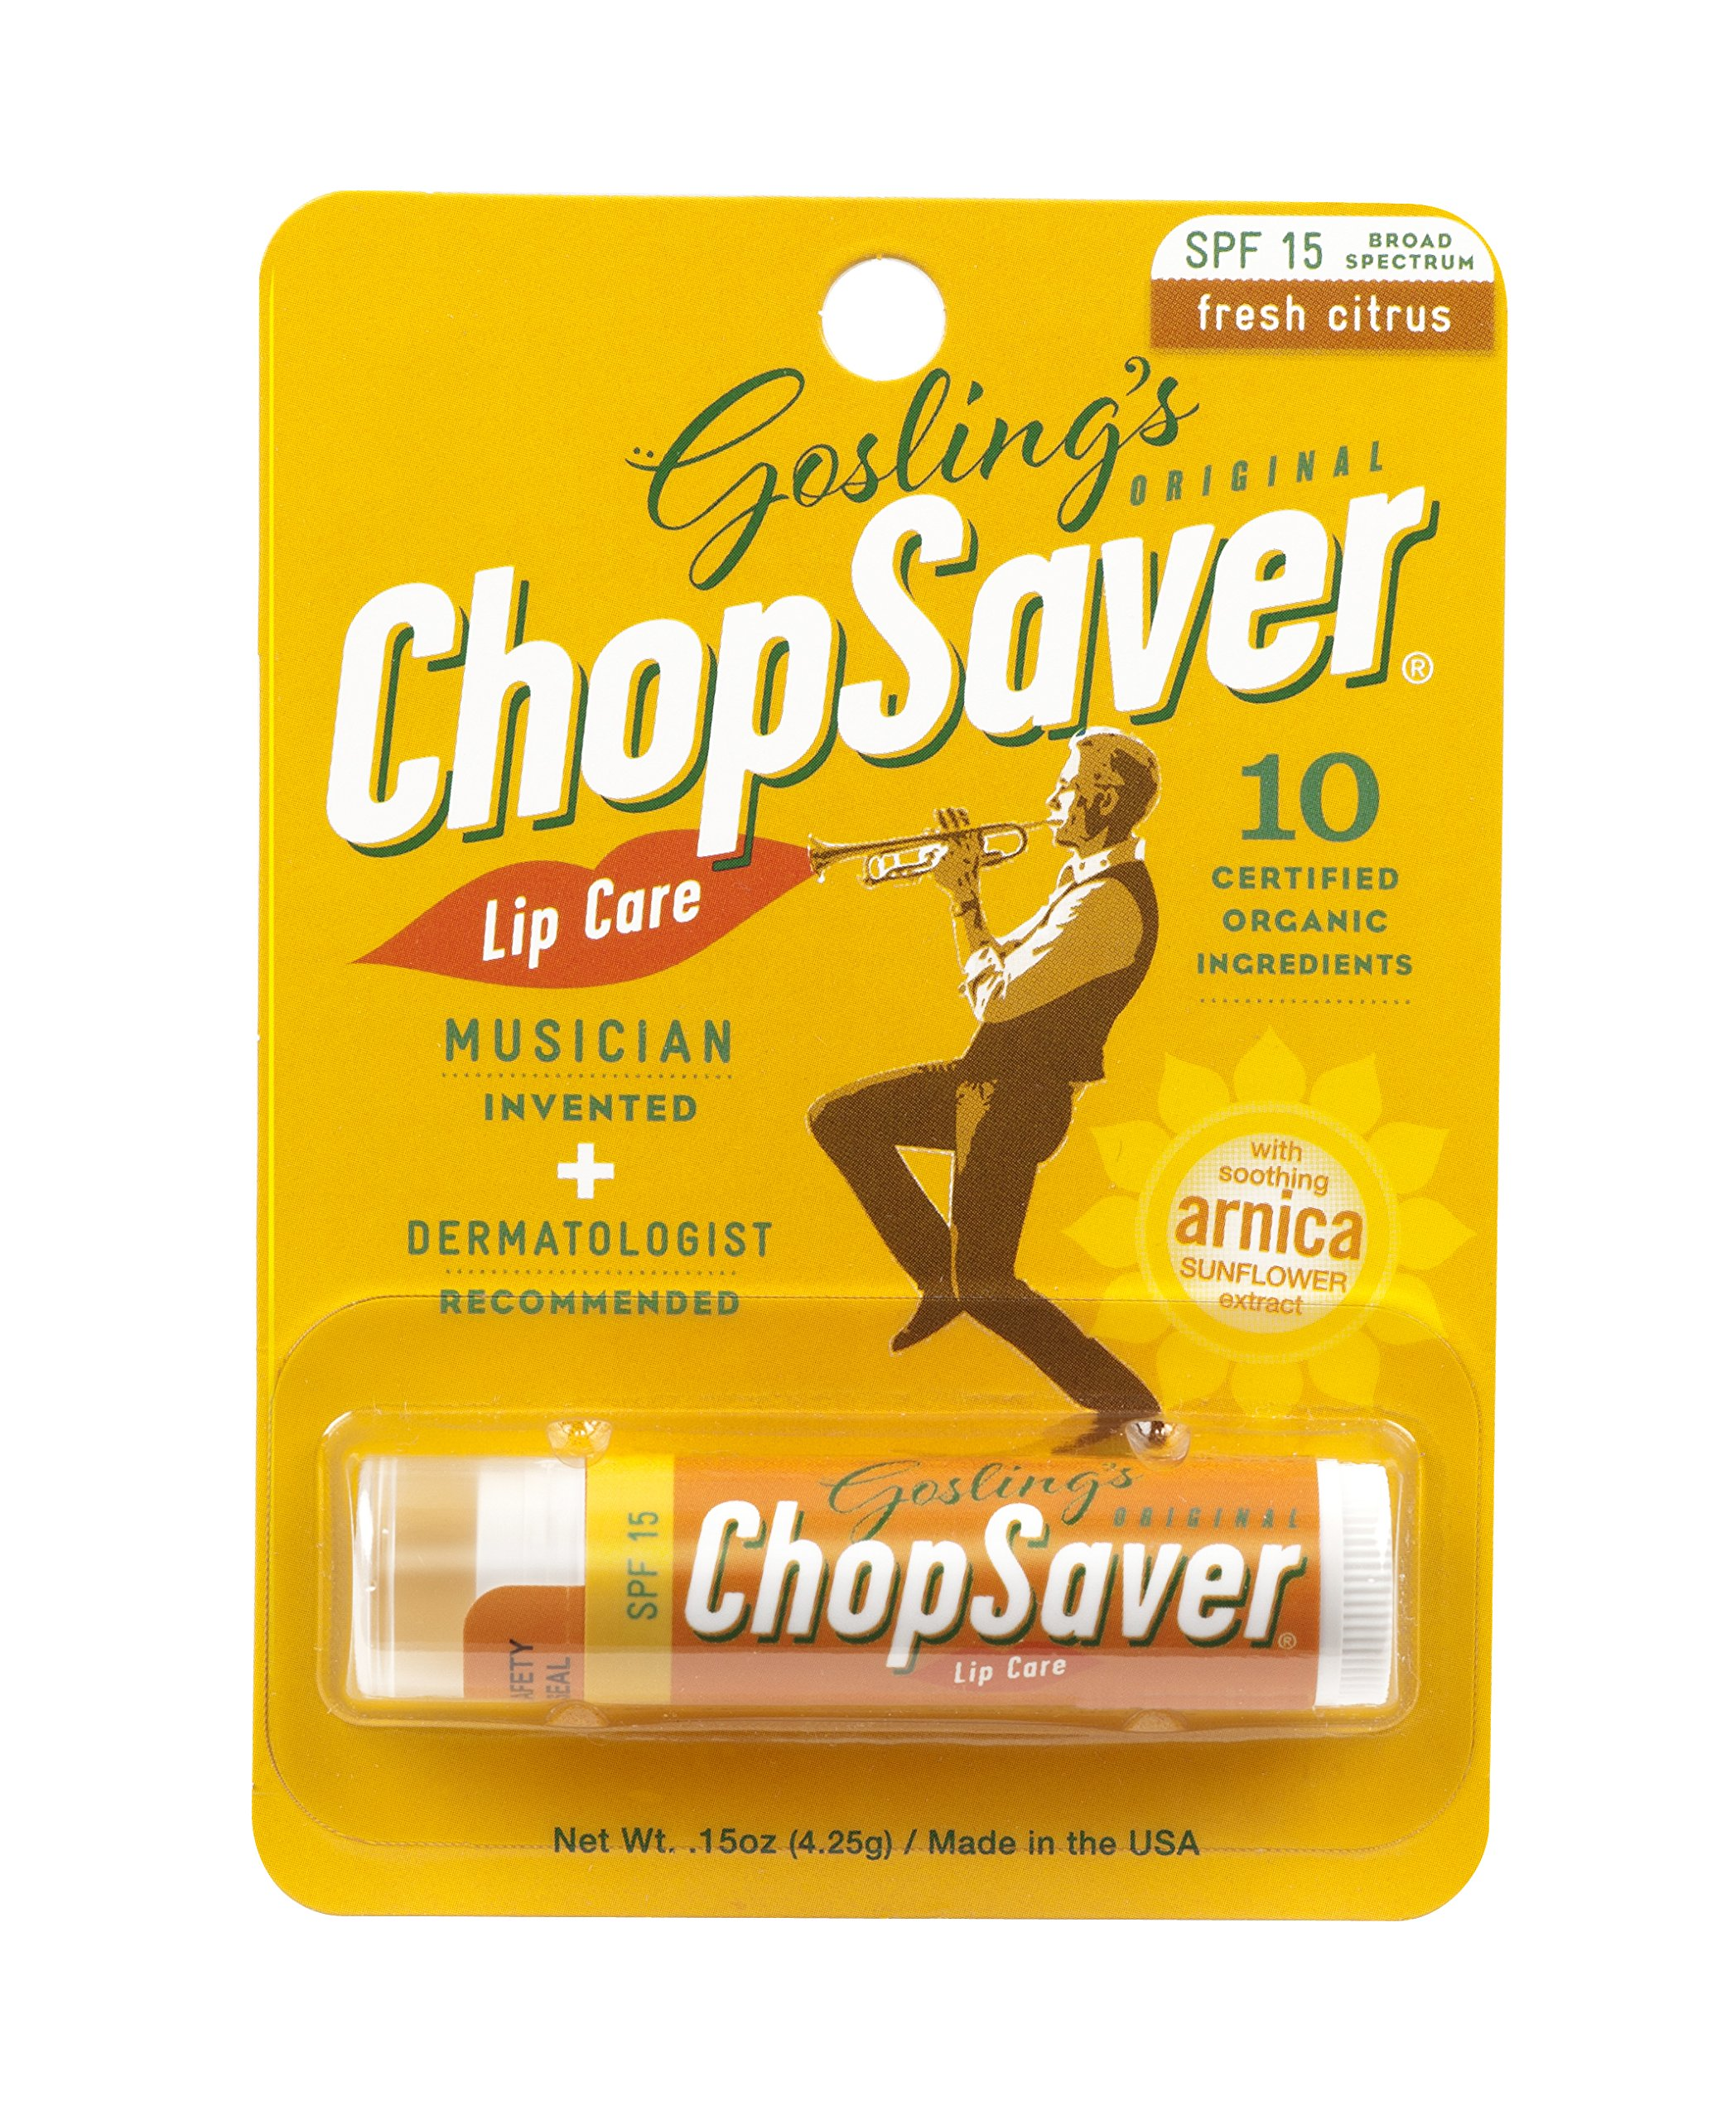 Goslings Original ChopSaver SPF 15 Lip Care, 0.15 Ounce (Pack of 6)